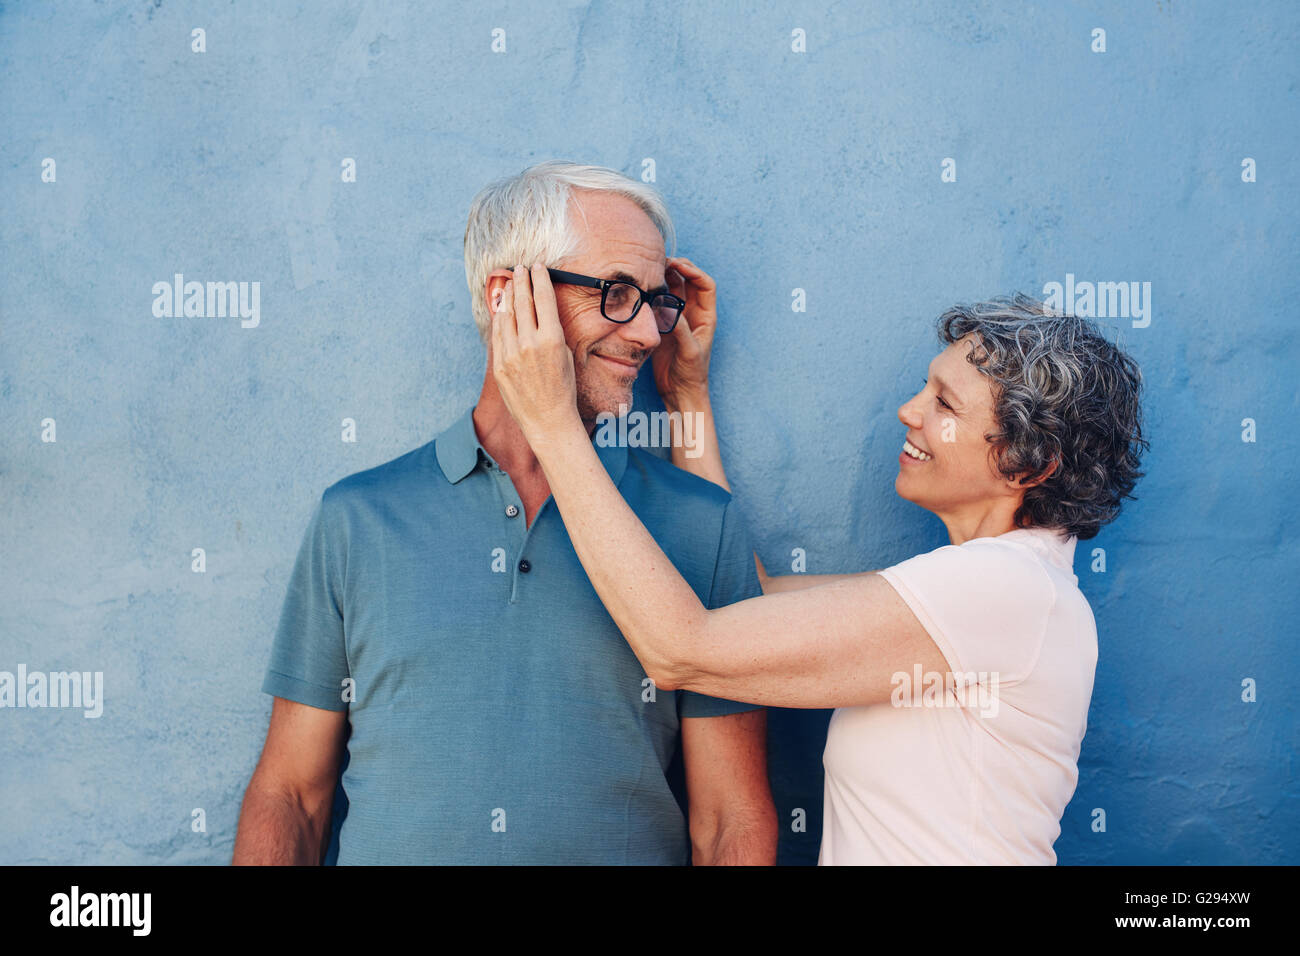 Portrait of woman adjusting the eyeglasses on her husband against blue background. Mature couple together on a blue - Stock Image